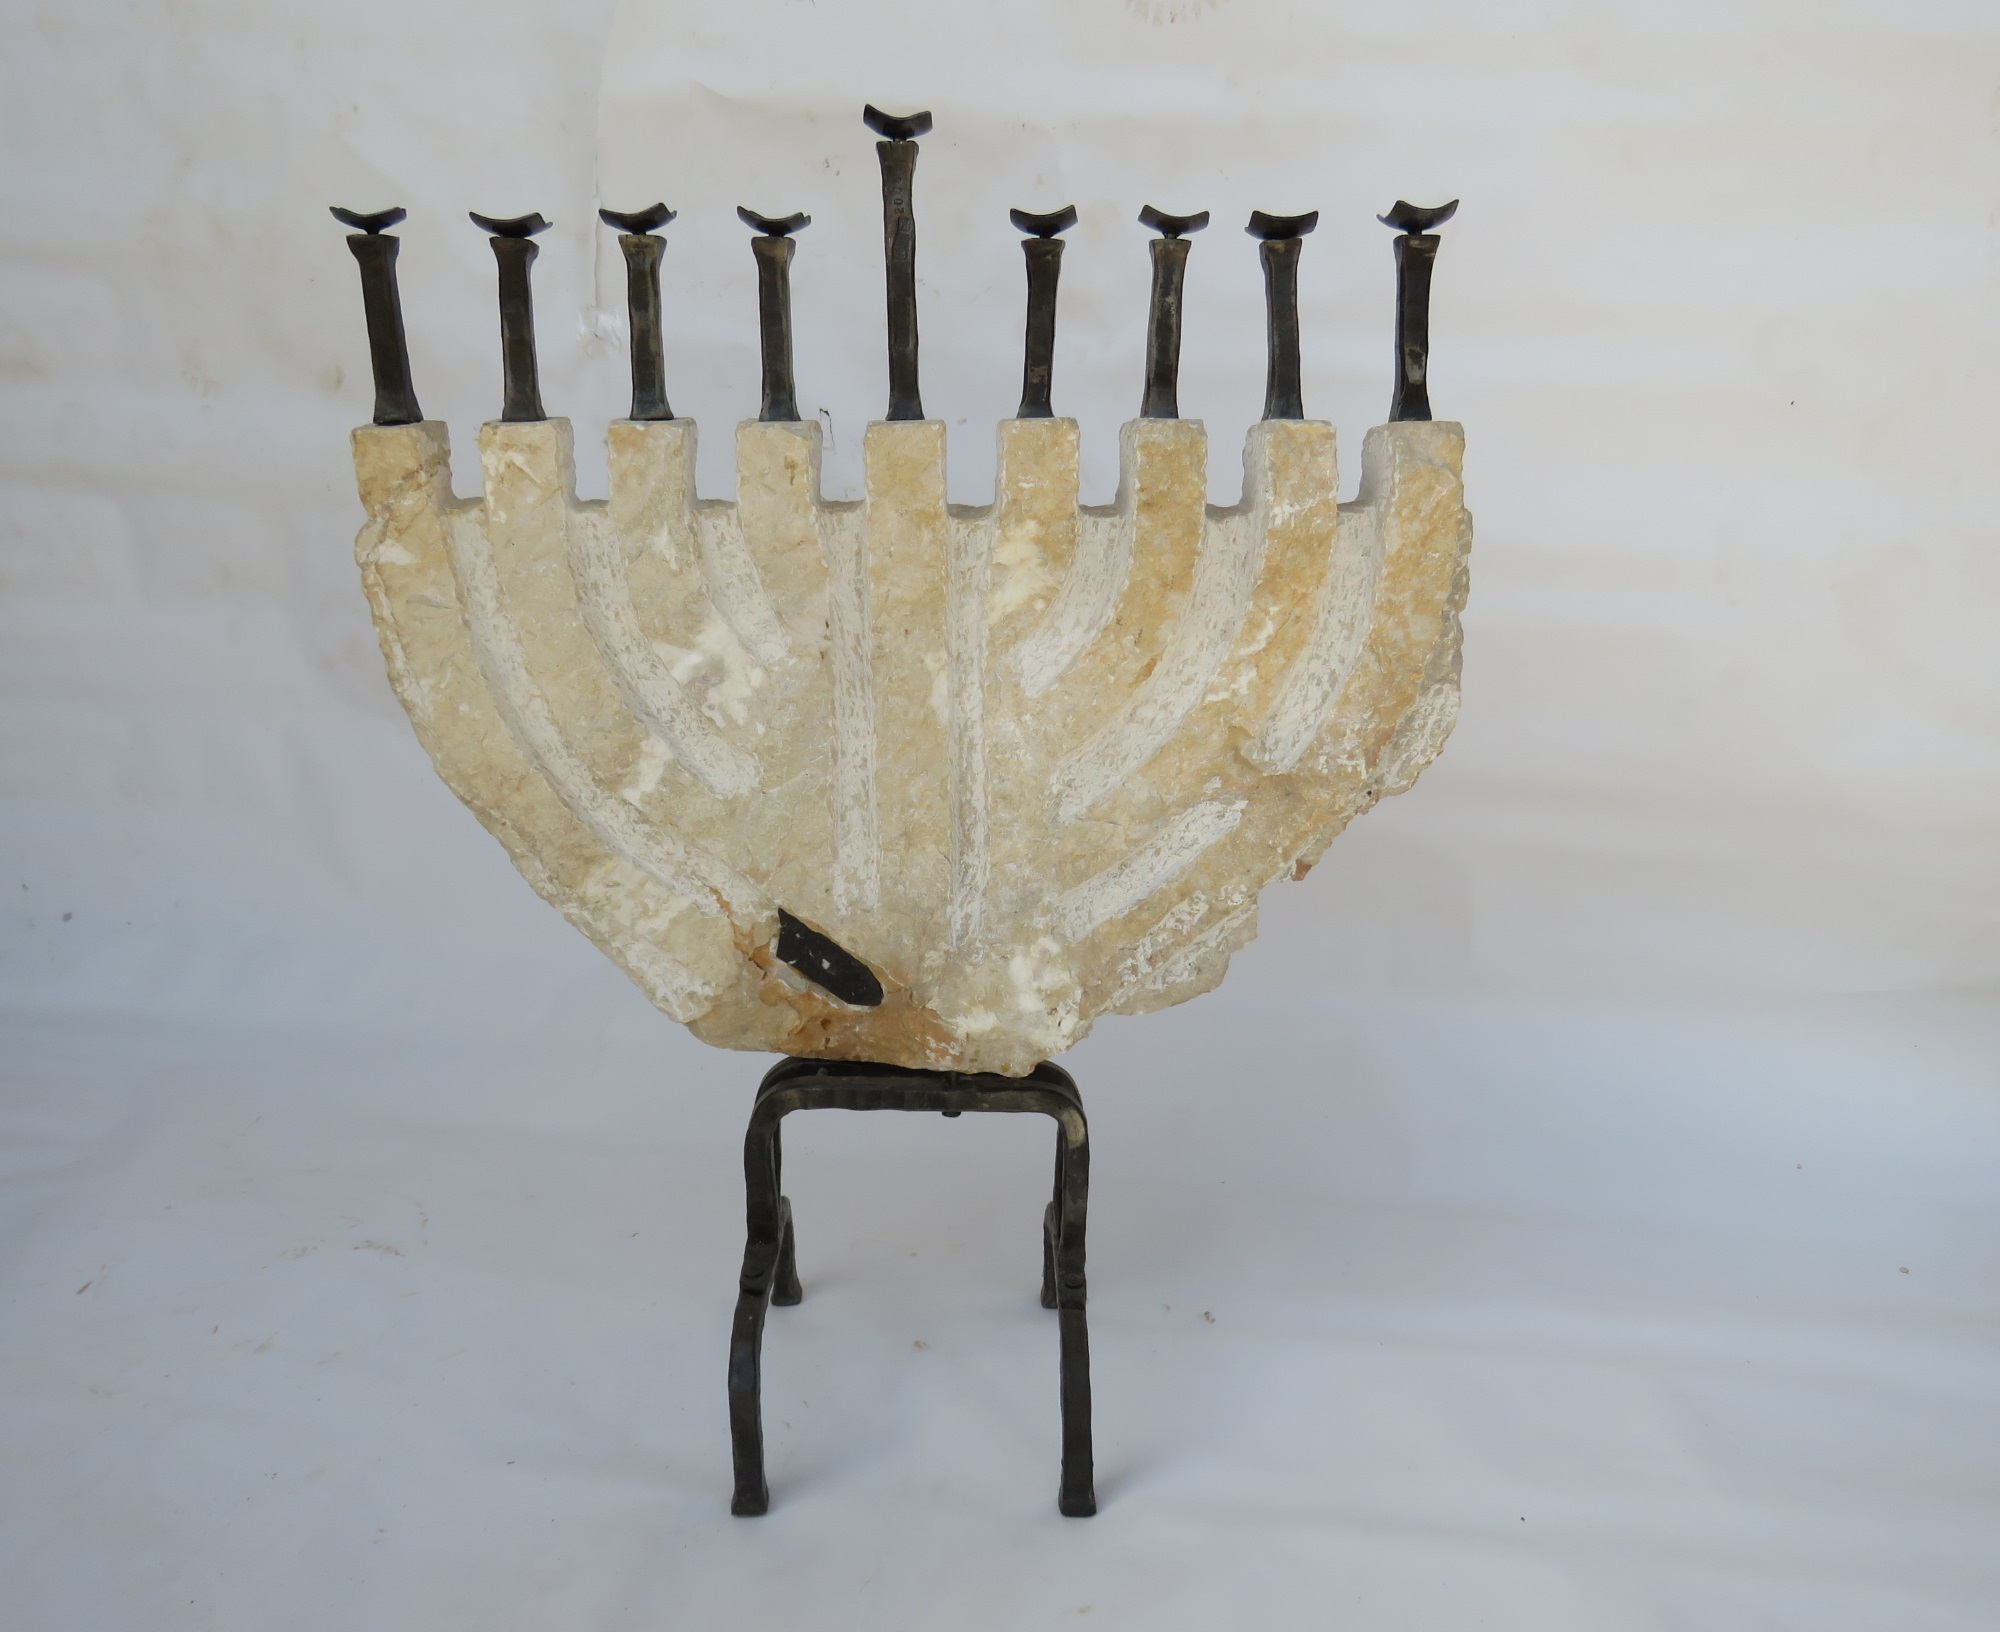 'Katzrin' – Large Hanukkah Menorah of Iron & Jerusalem Stone